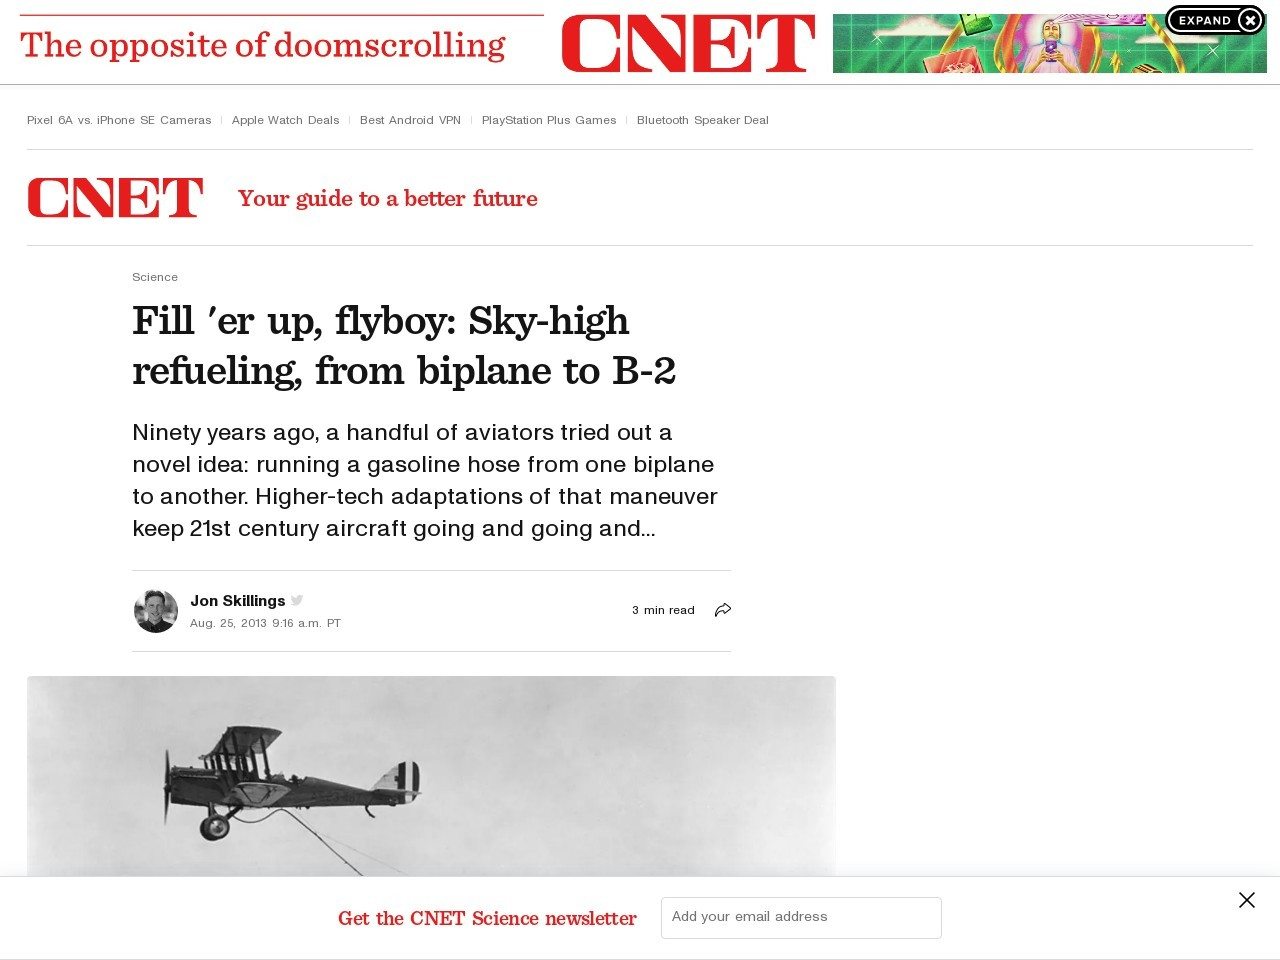 Fill 'er up, flyboy: Sky-high refueling, from biplane to B-2